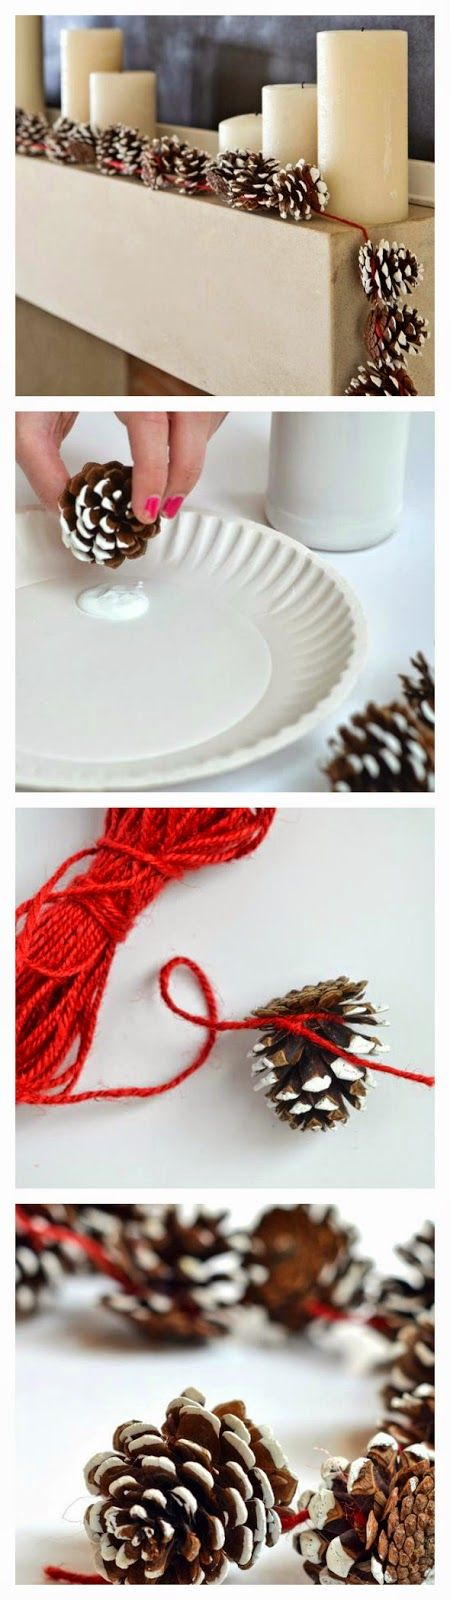 Hand made pine cone garlands - could make these with the kids. Craft Blog UK: Pine Cone Christmas Decorations